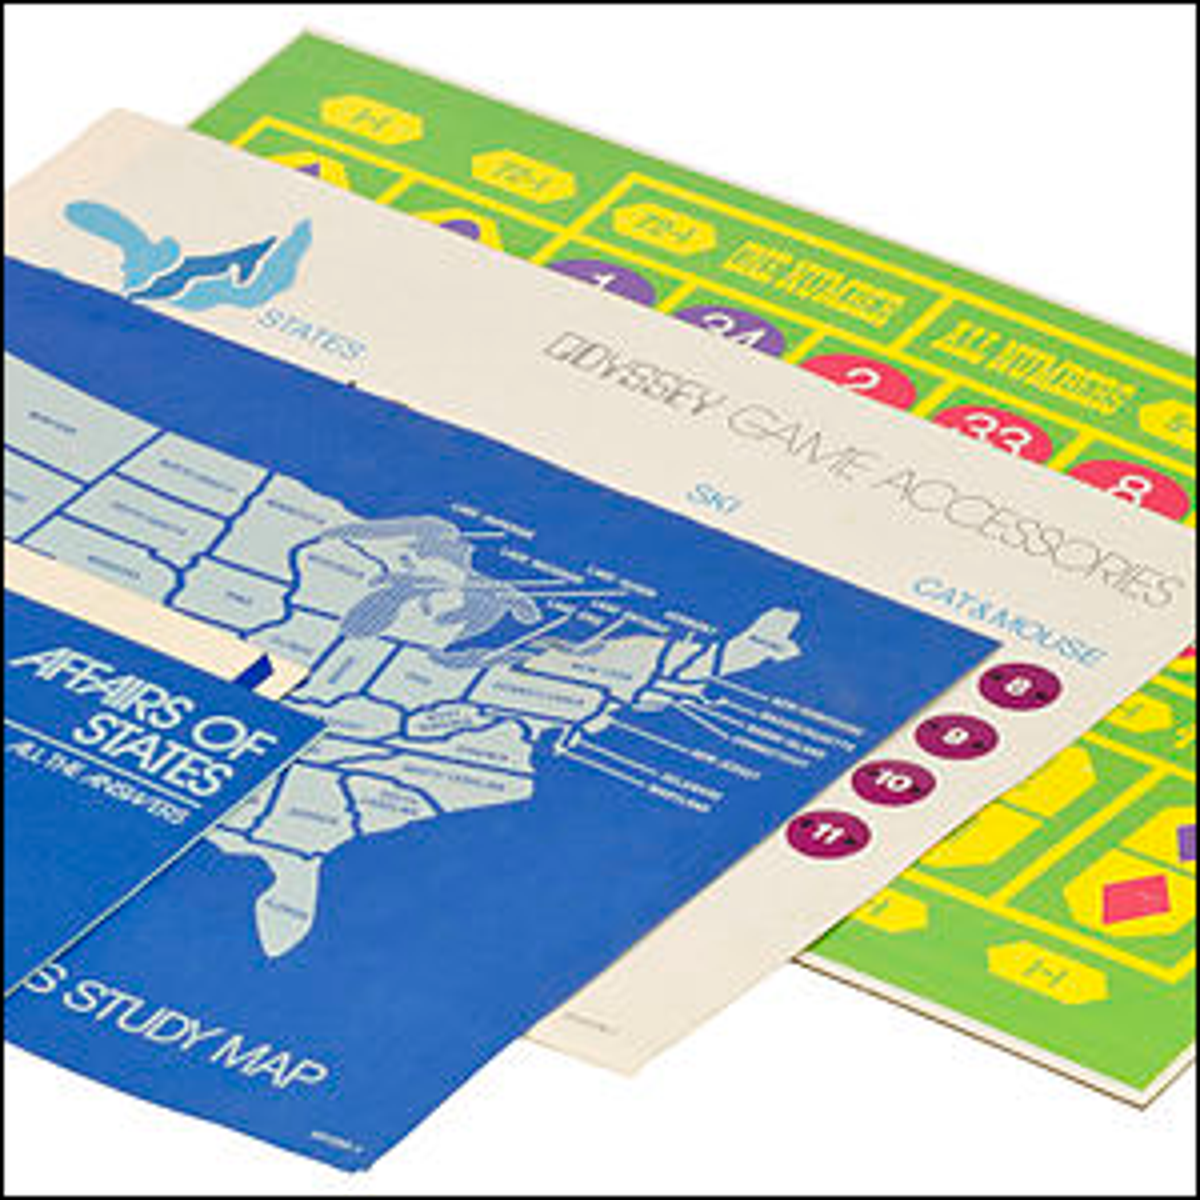 Game boards for the Magnavox Odyssey video game console.